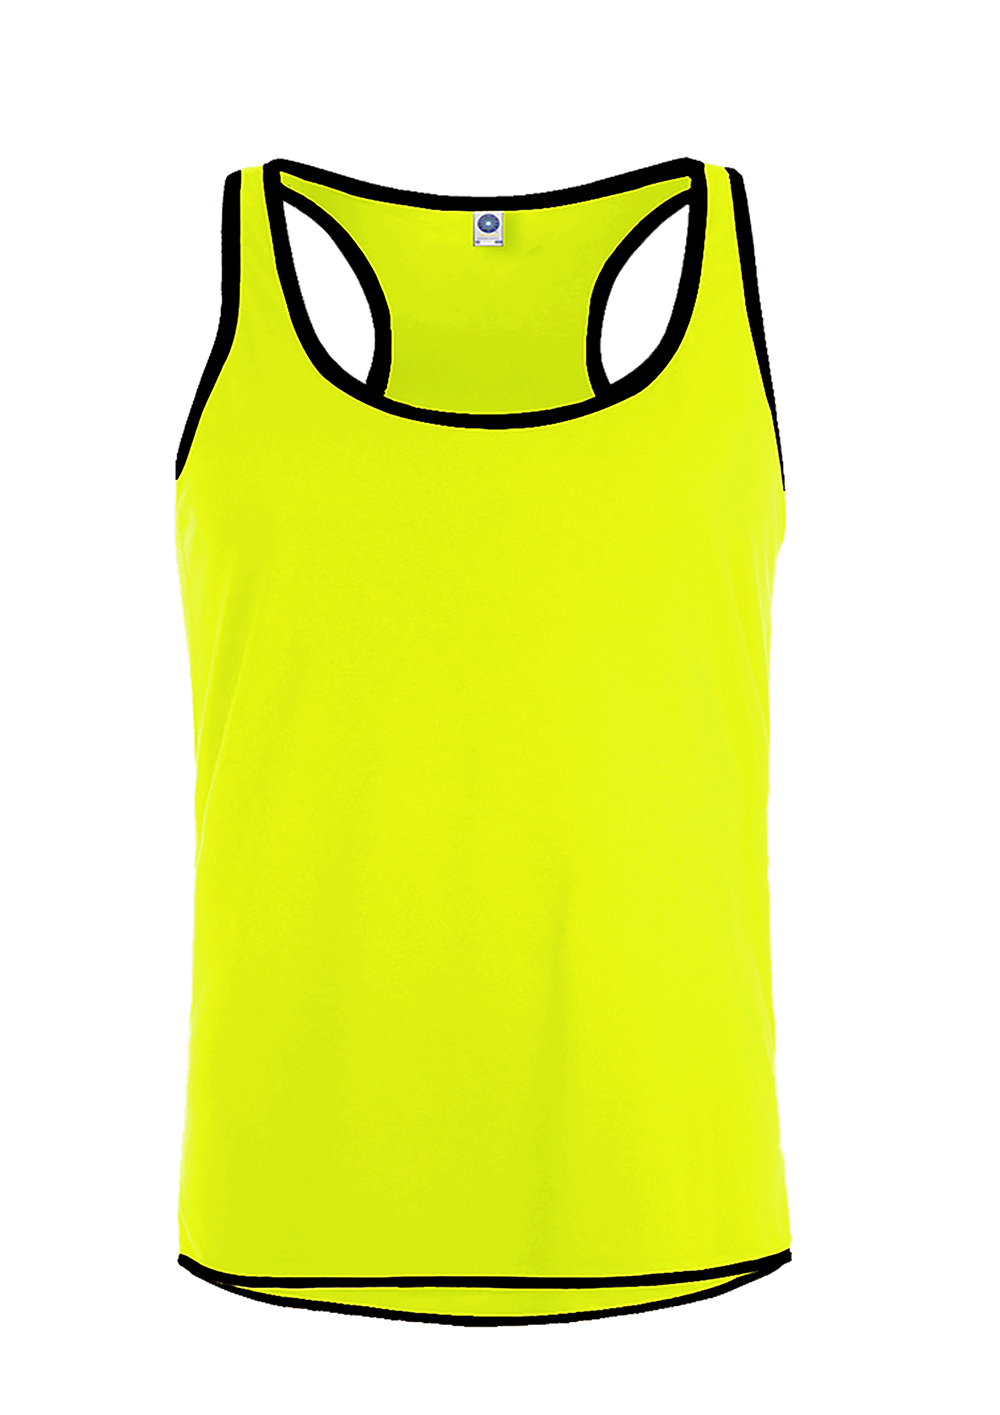 SW305-64-17-FLYellow-Black.png